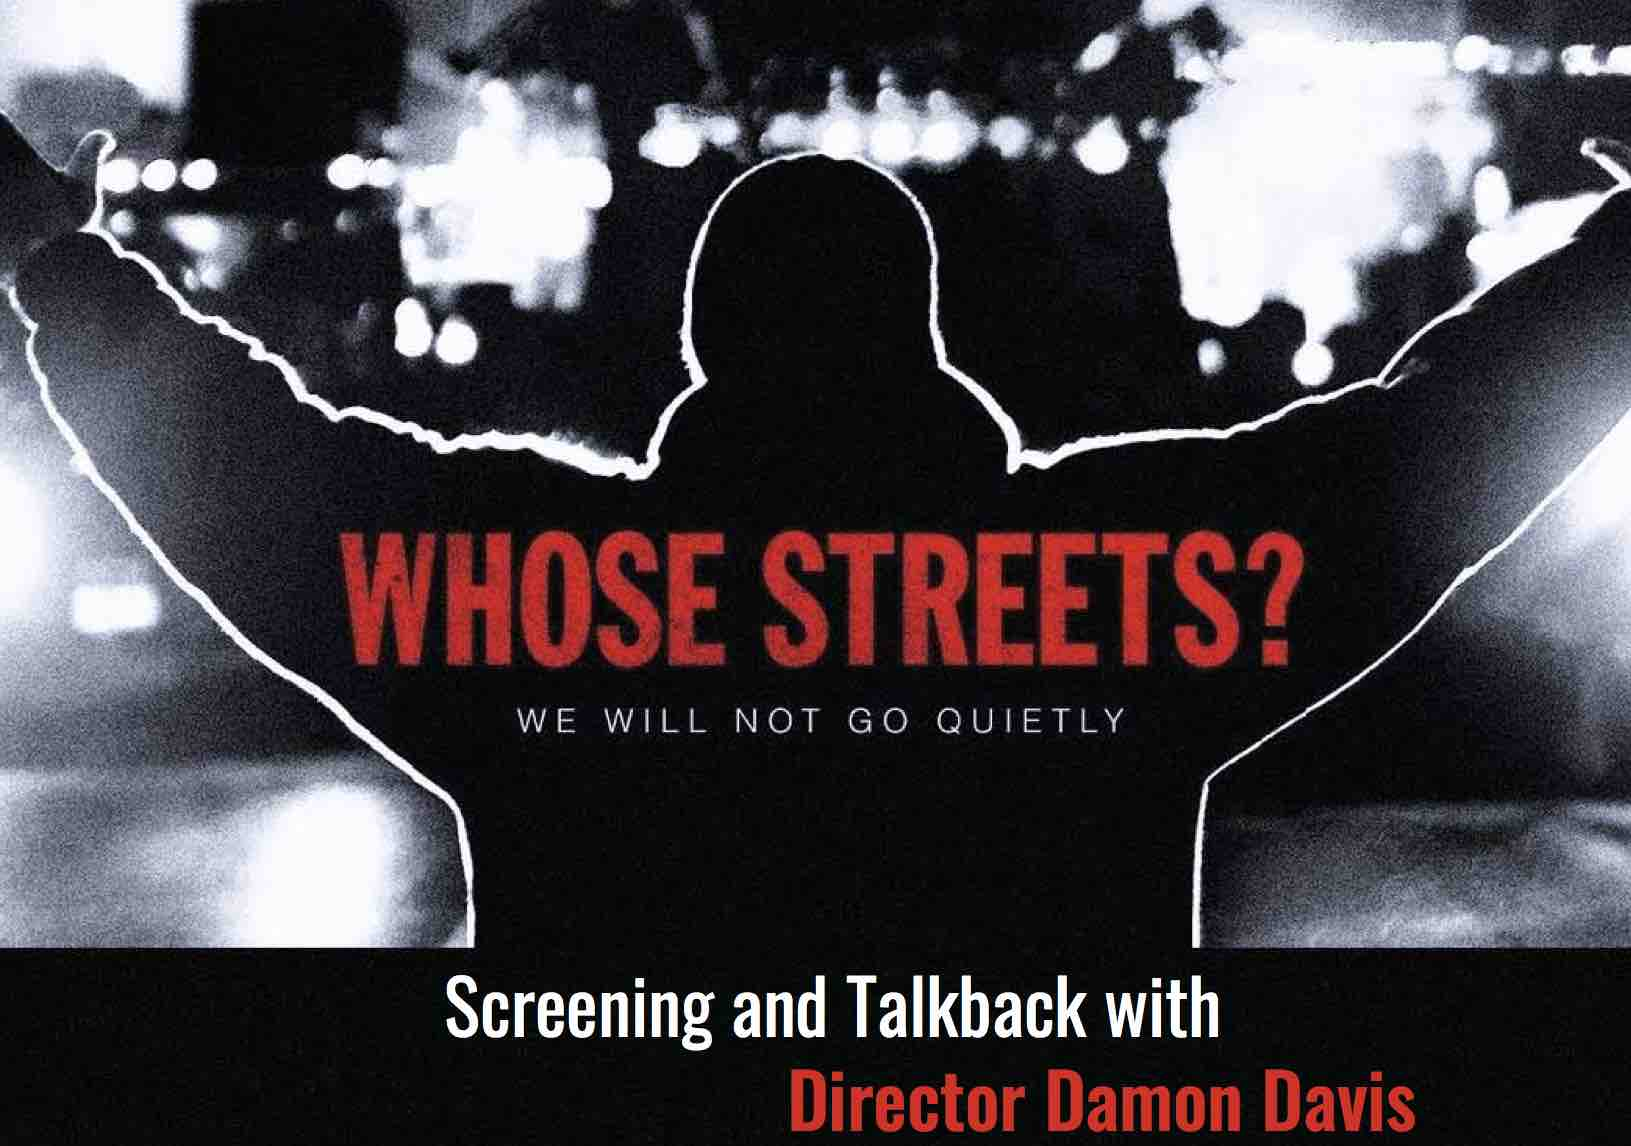 WHOSE STREETS? Screening and Talkback with Director Damon Davis